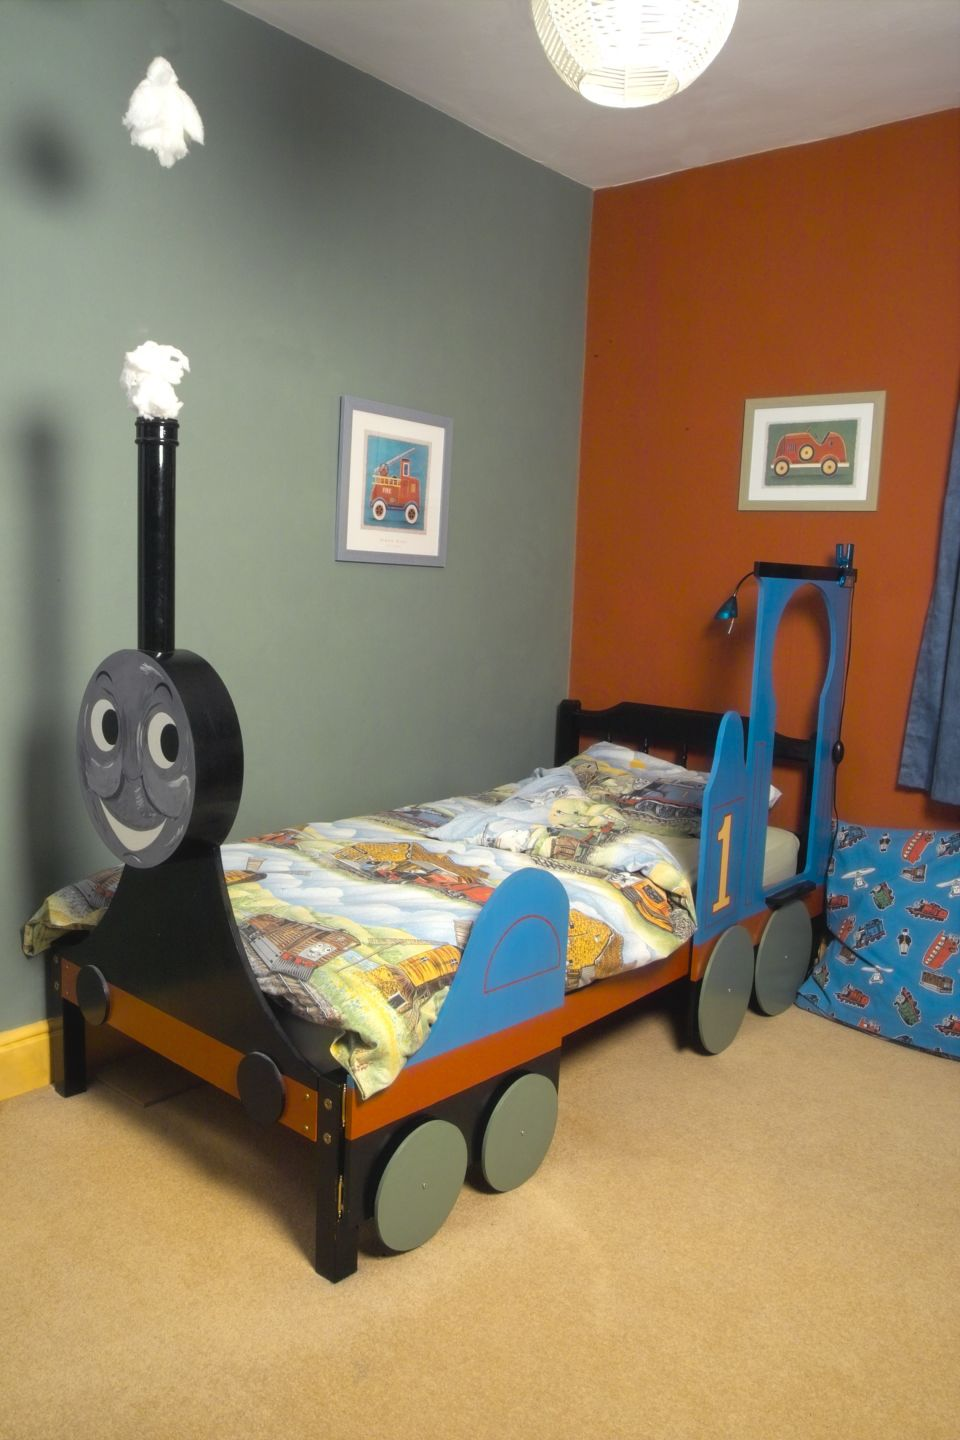 children's rooms - here a toddler's bedroom design with train themed bed.